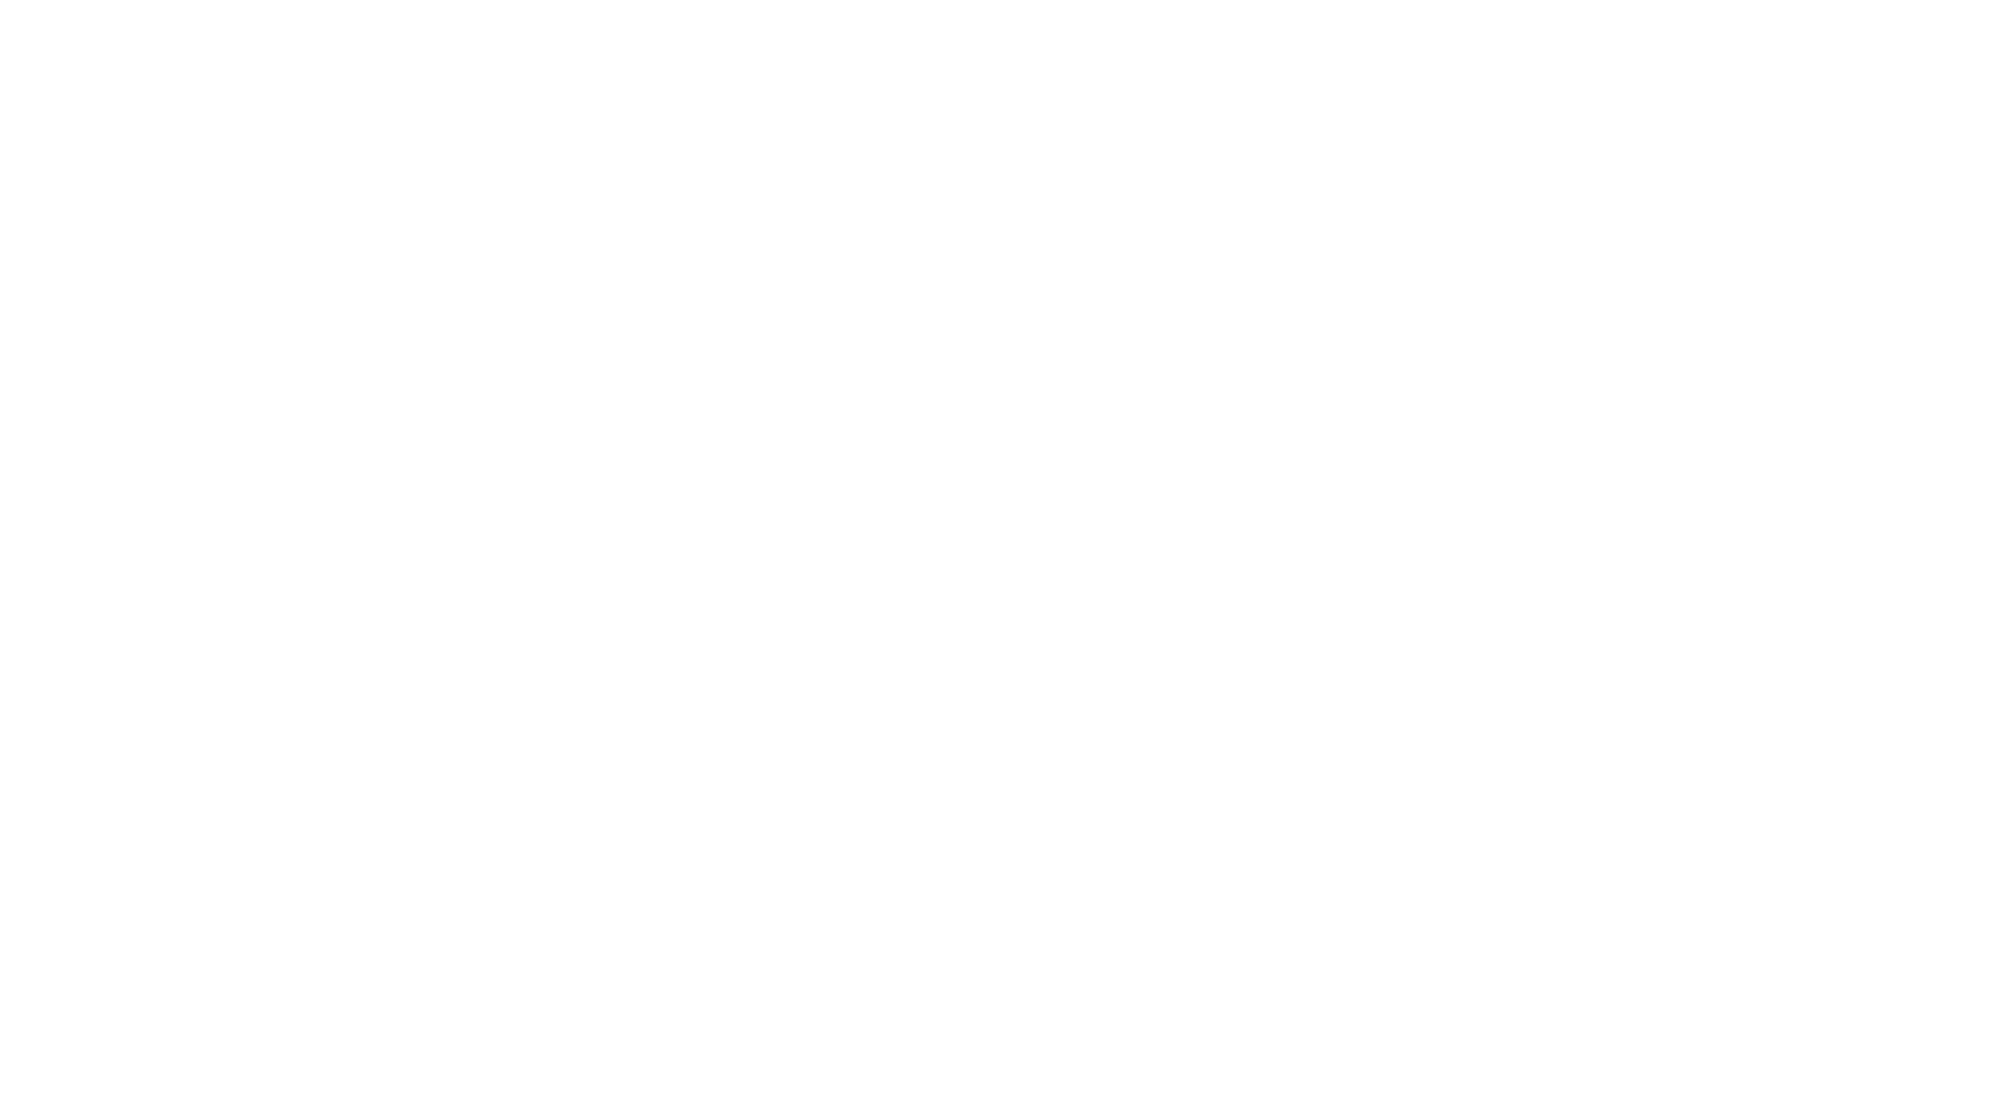 AFS_AustinFilmSociety_Lockup_01_White_RGB.png